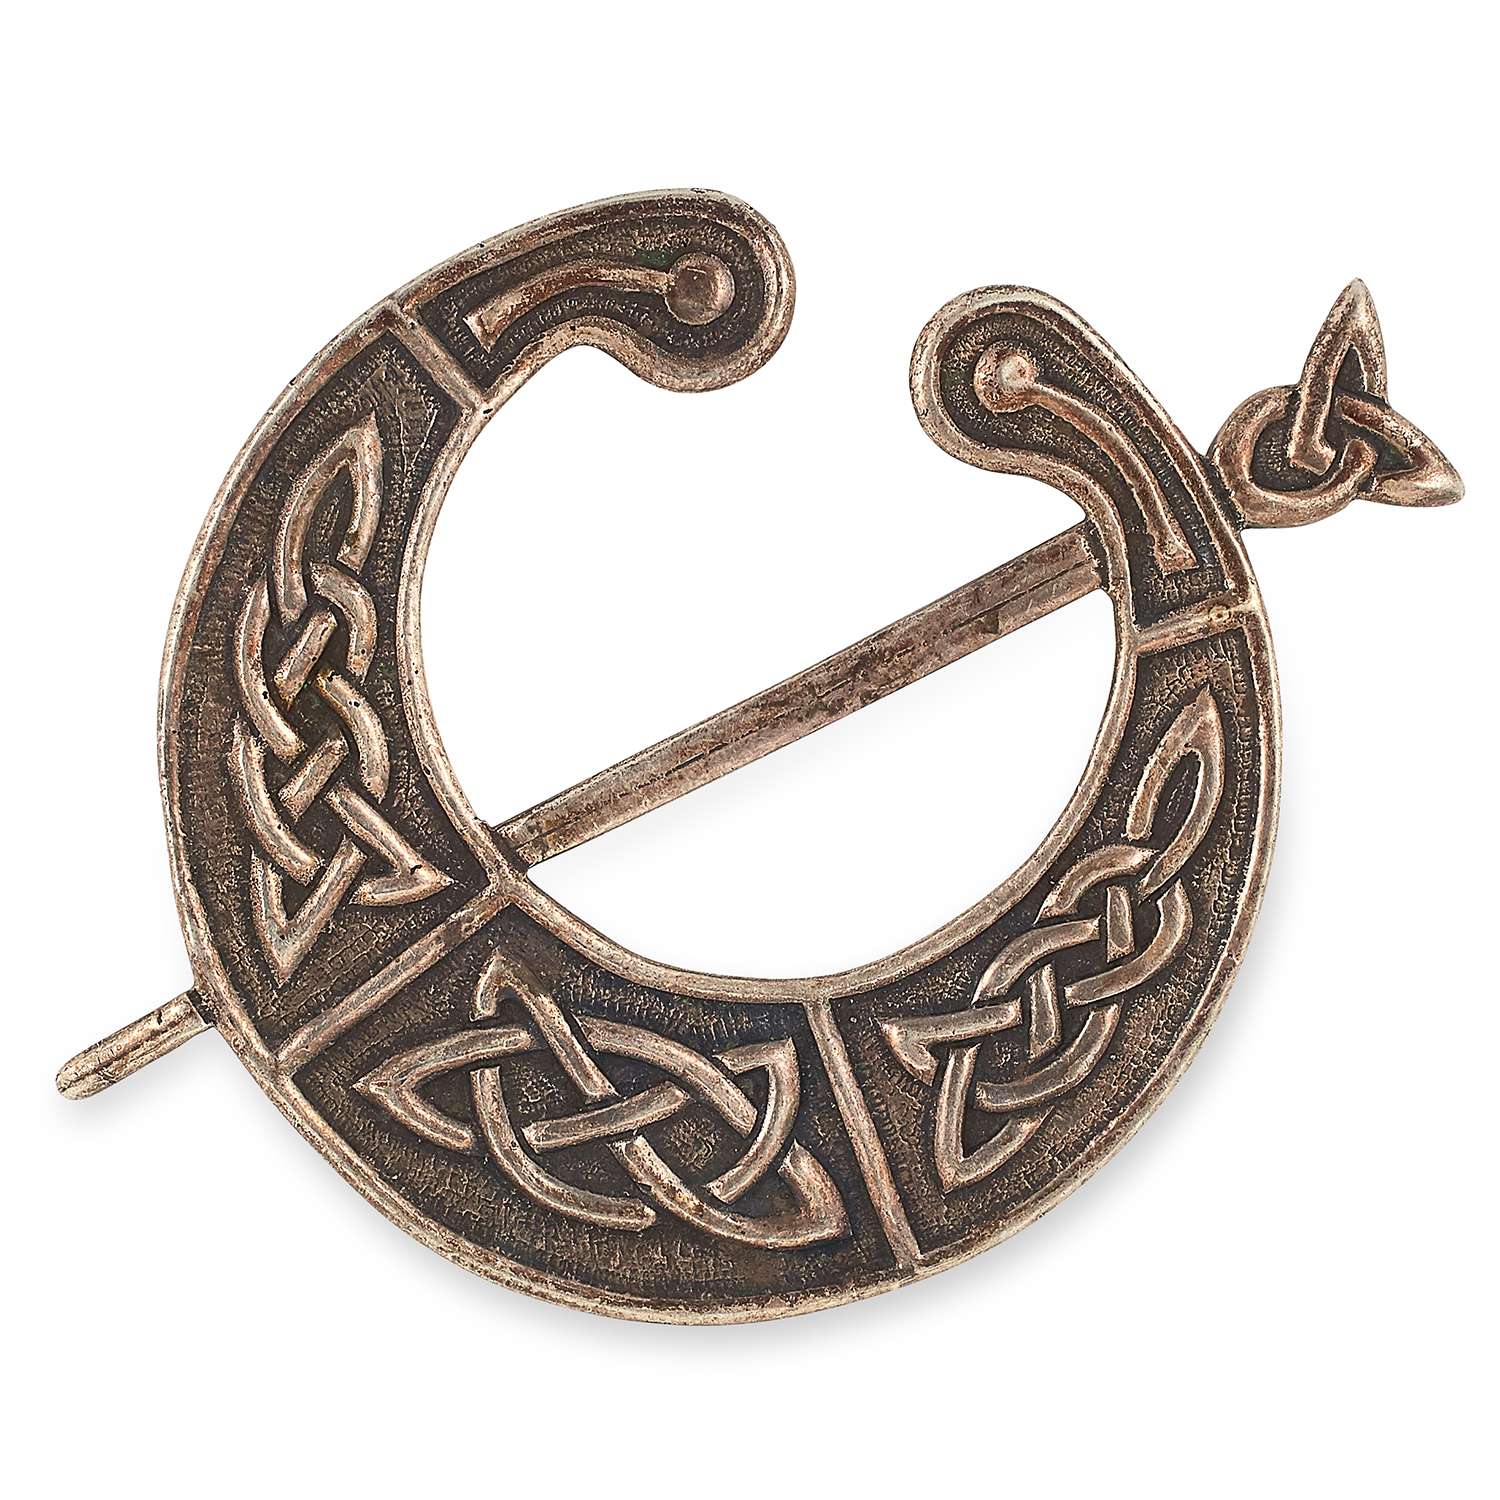 CELTIC STERLING SILVER BROOCH, IONA with Celtic motif, stamped Iona, 9cm, 29.3g.